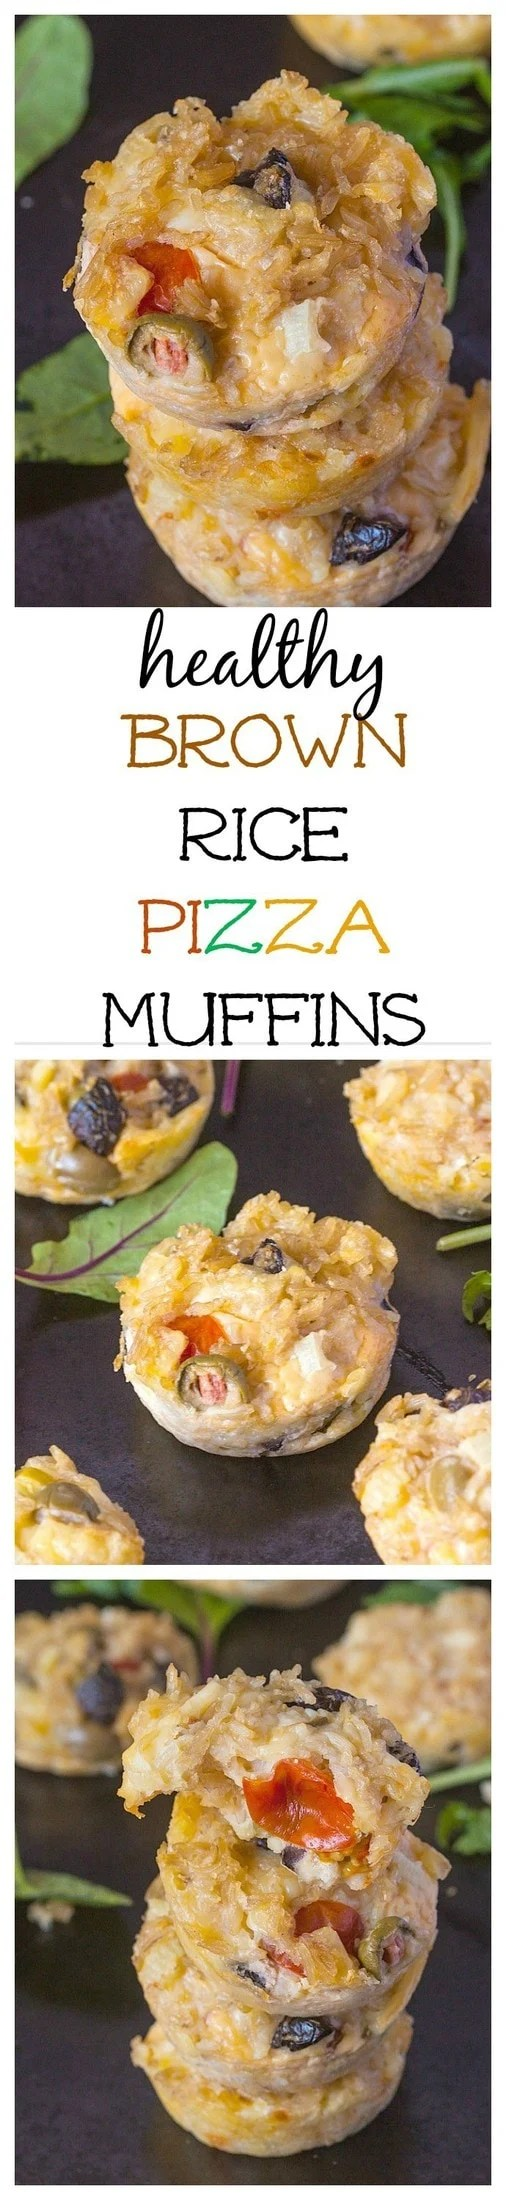 Healthy Brown Rice Pizza Muffins- All the flavours of pizza without flour, dough and made in muffin tins! @thebigmansworld- thebigmansworld.com